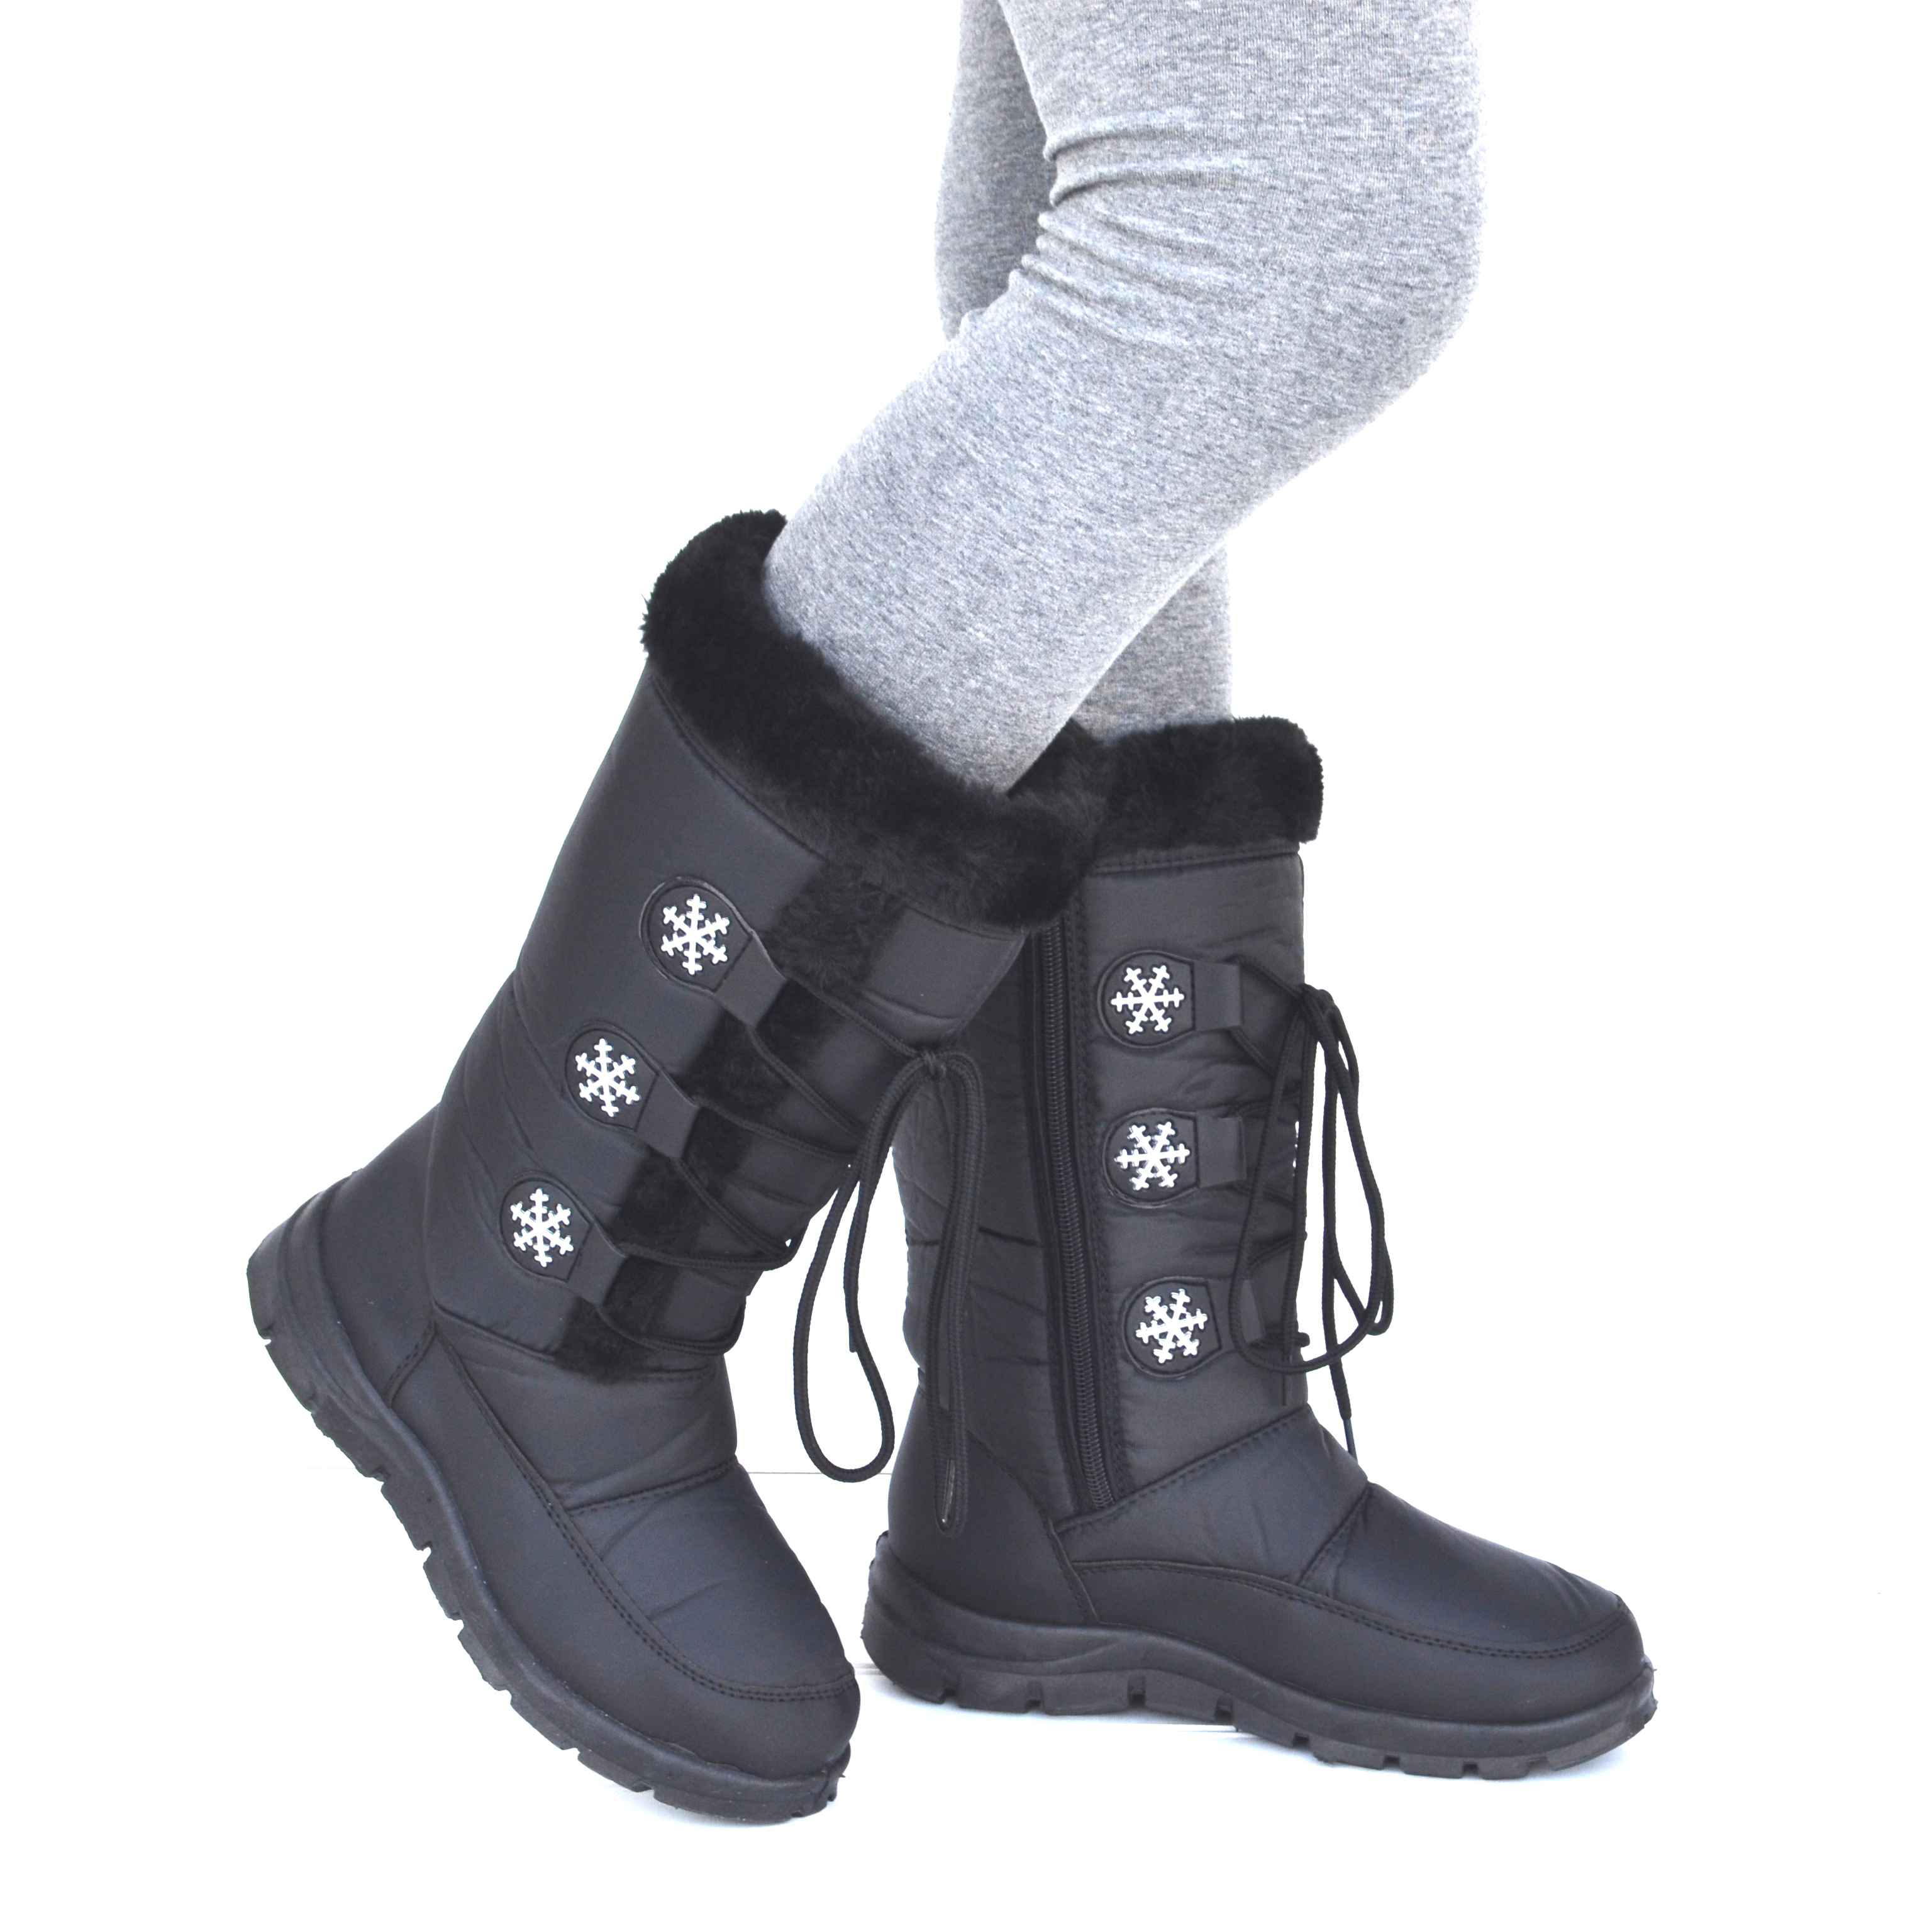 Mata Women's Water Resistant Insulated Fur Lined Snow